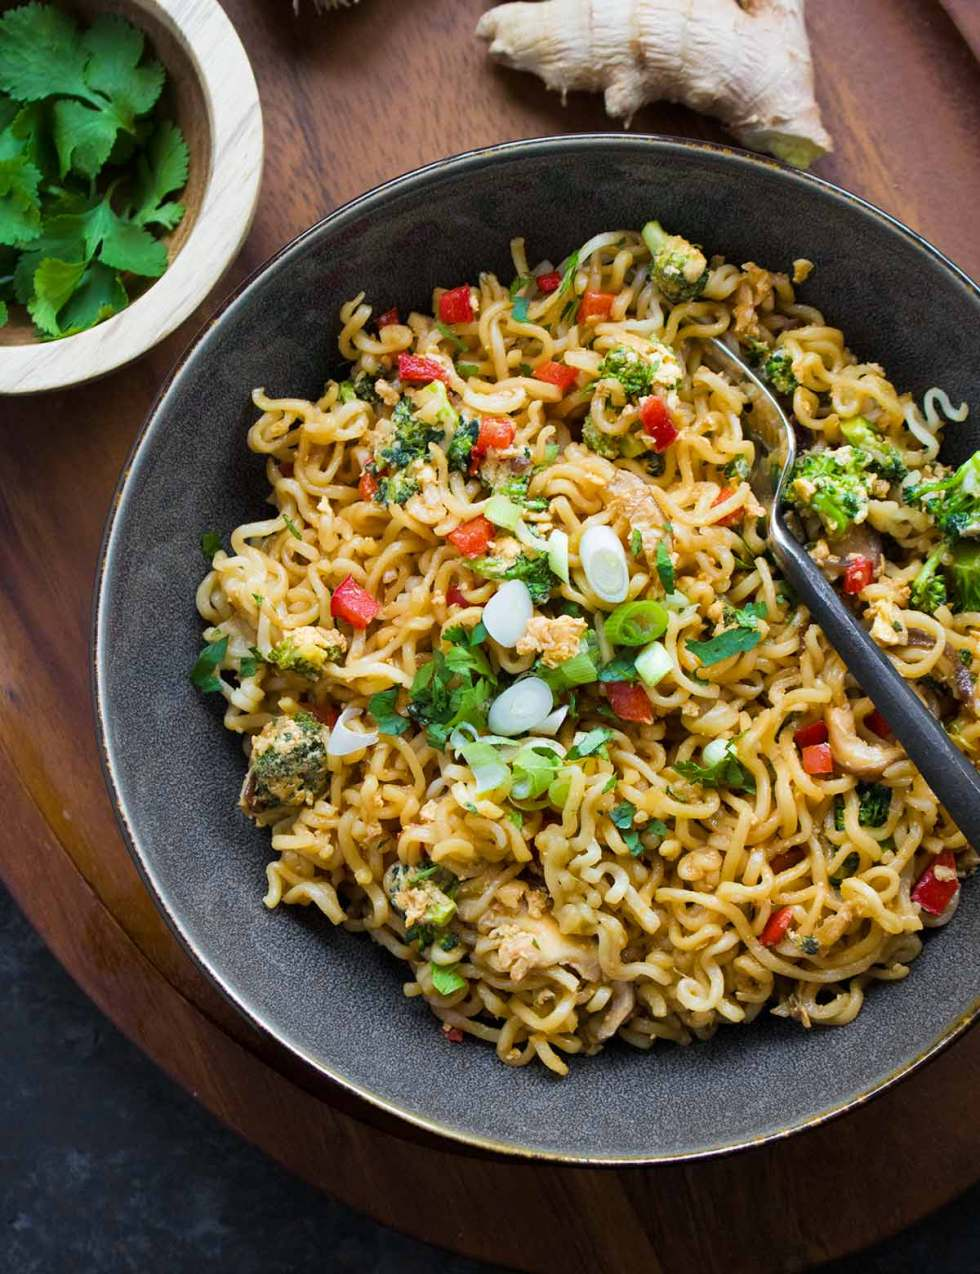 Ramen Noodle Stir Fry, quick and easy weeknight meal, from SoupAddict.com